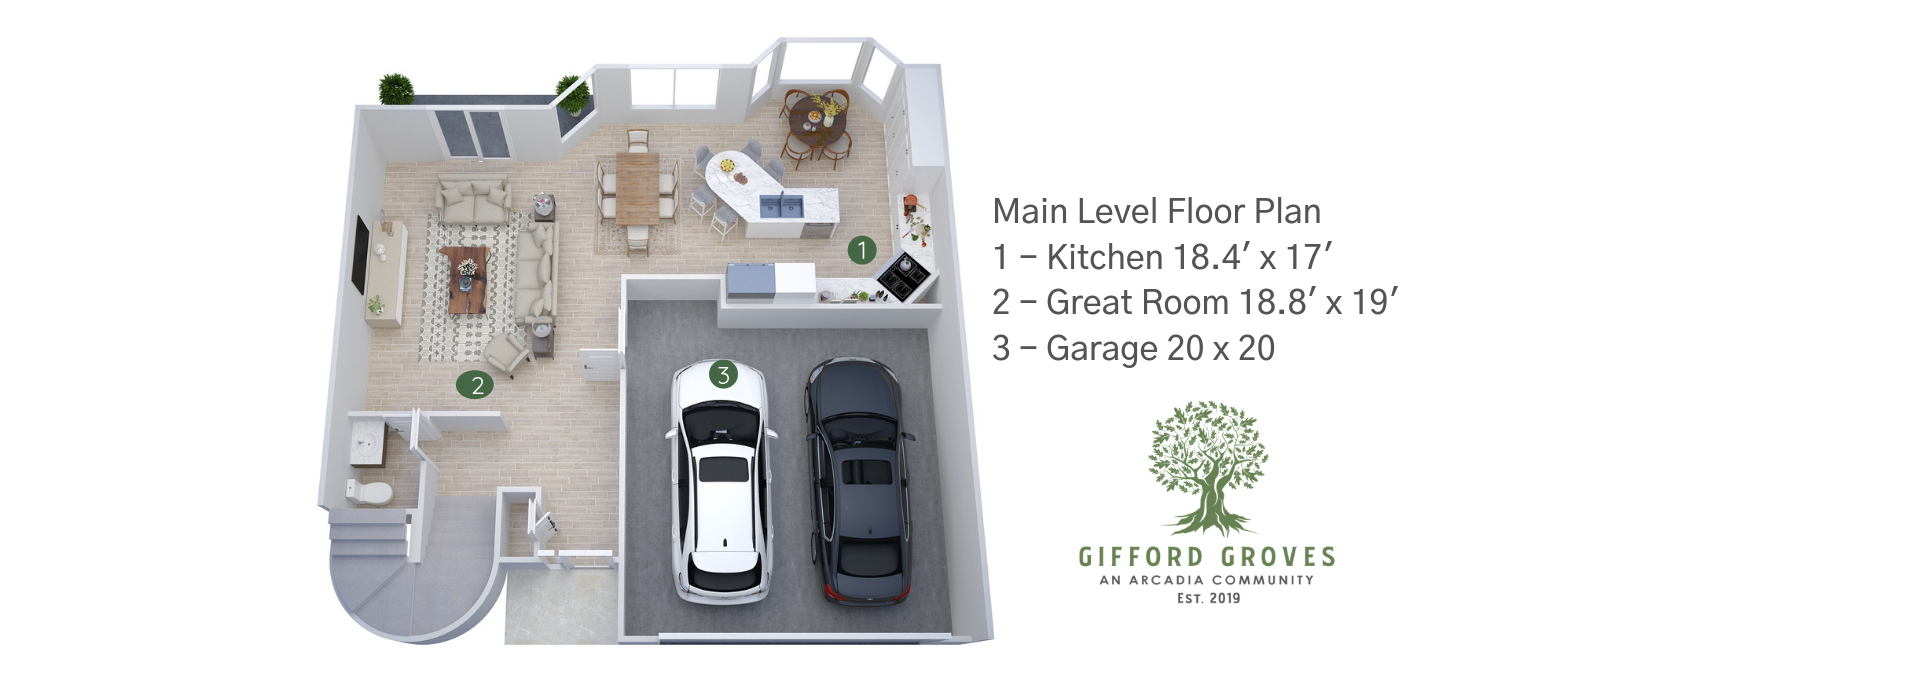 Main-Level-Floorplan-3